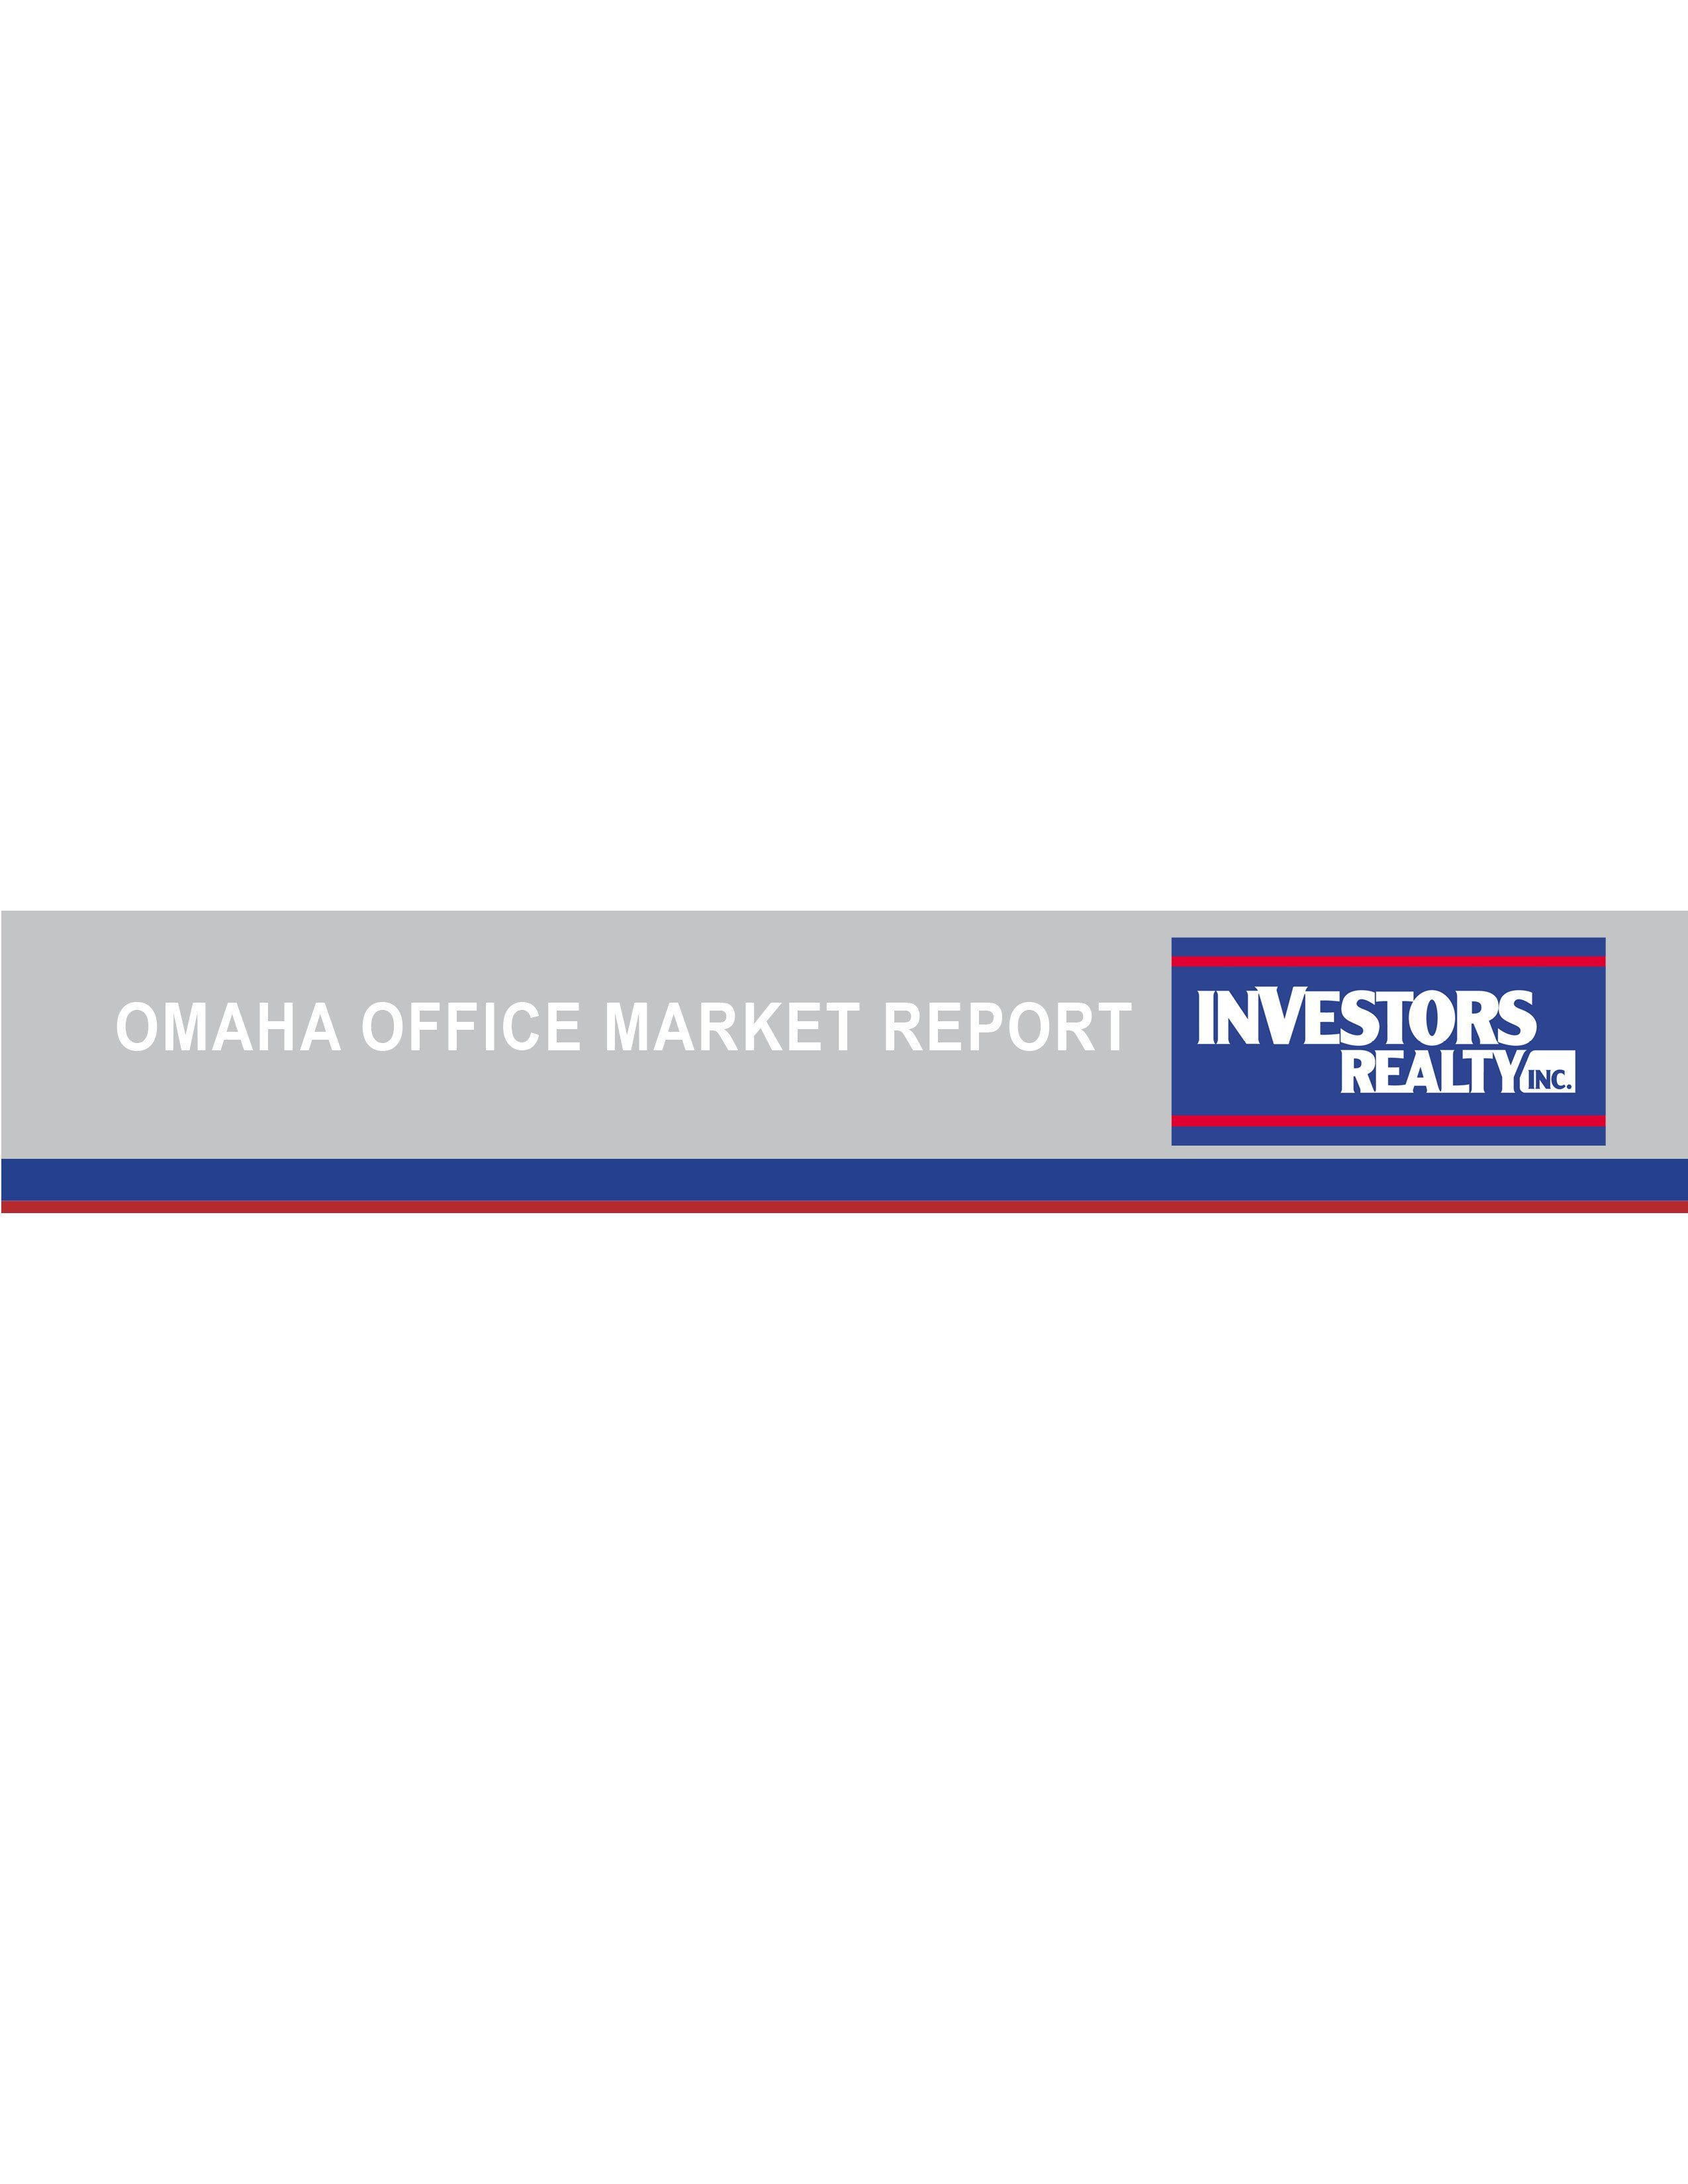 Investors Realty Winter 2013 Office Market Report